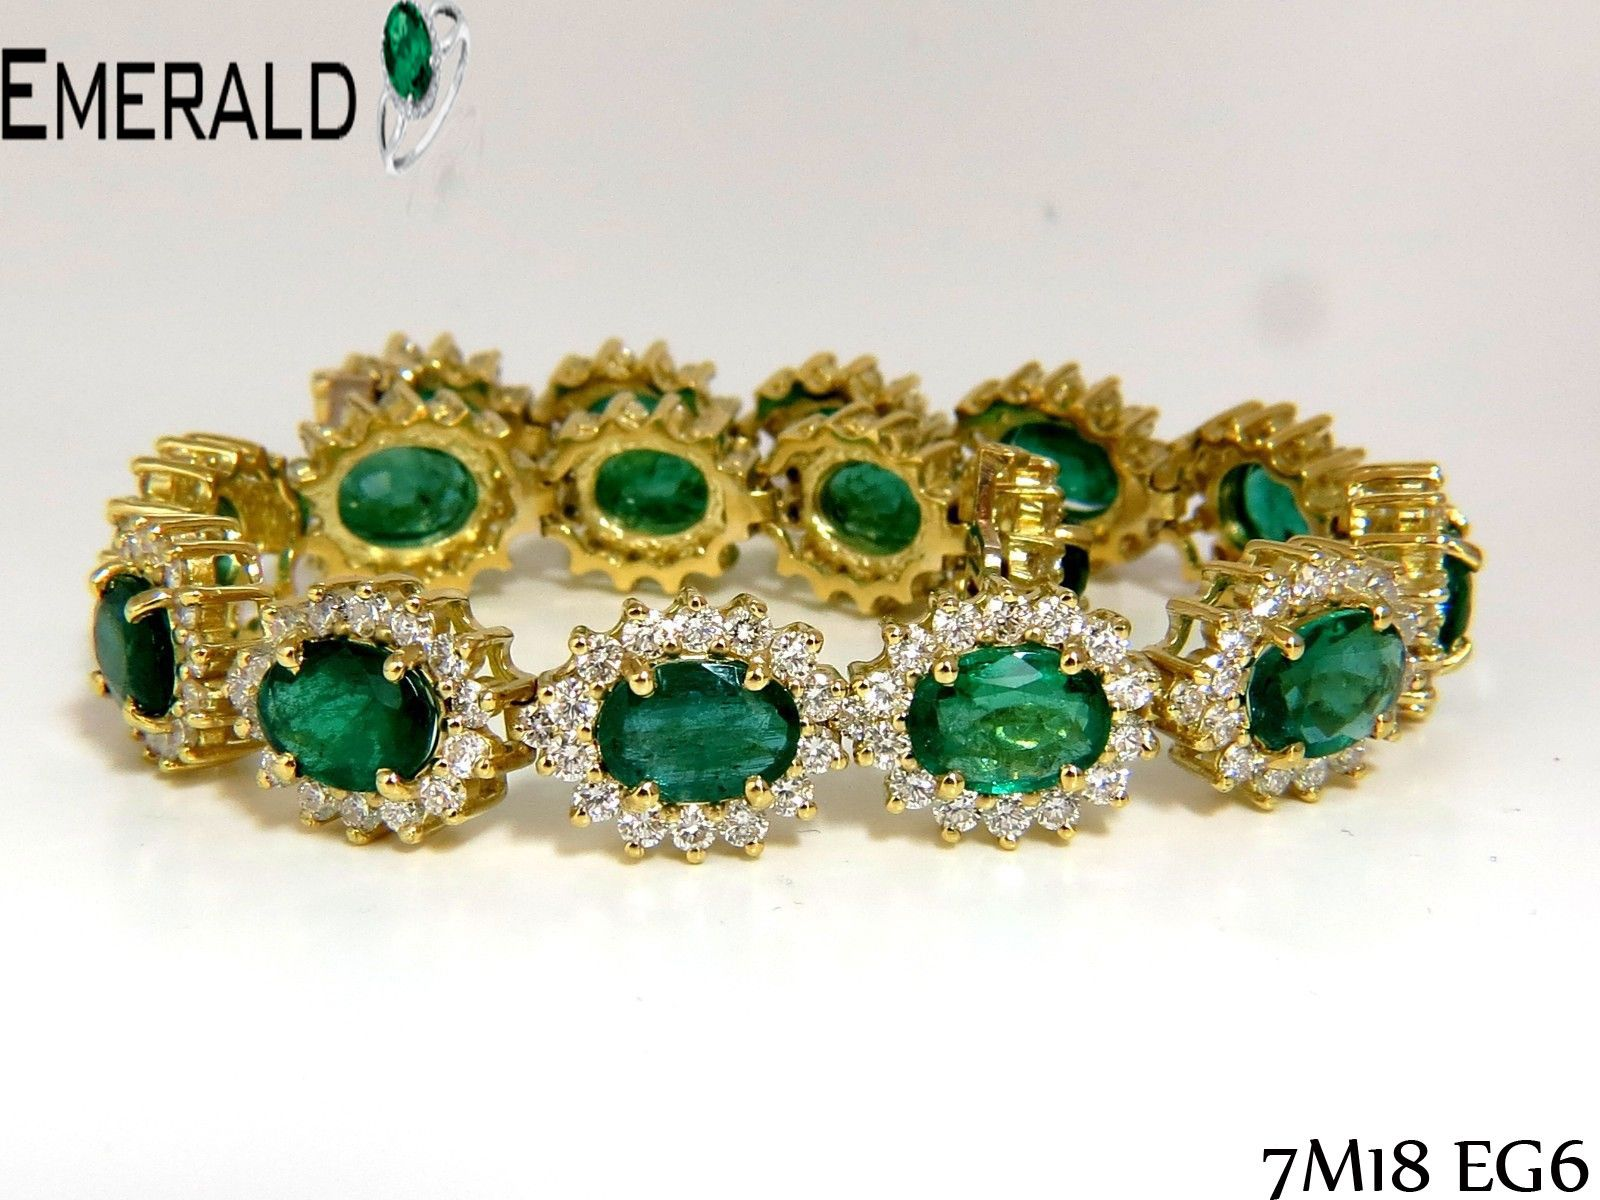 raise by bracelet emerald classy your an standards pin wearing